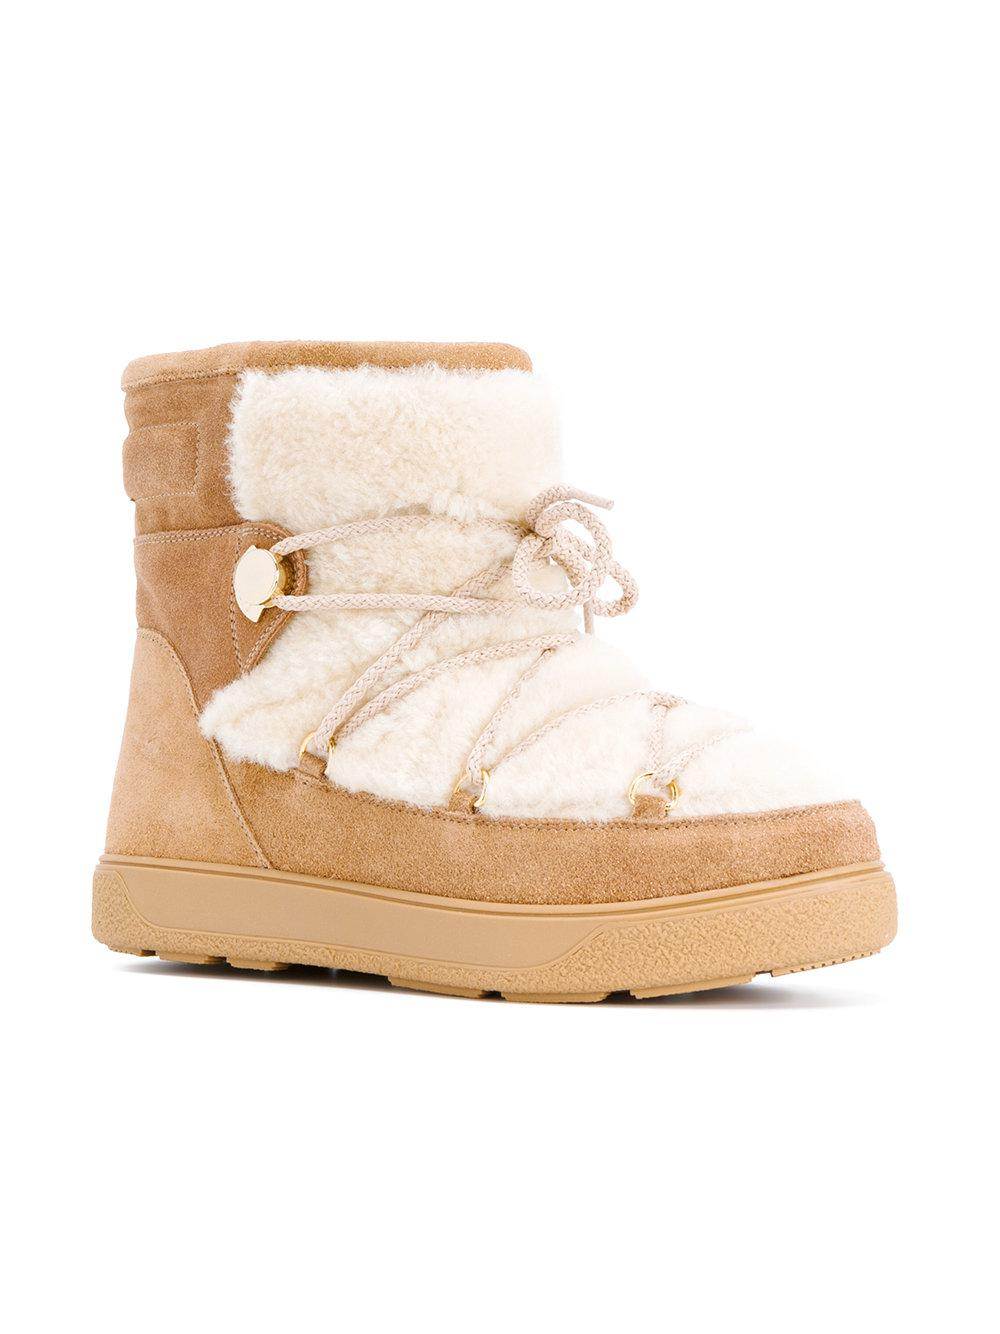 c4c79230e291 Lyst - Moncler New Fanny Snow Boots in Brown